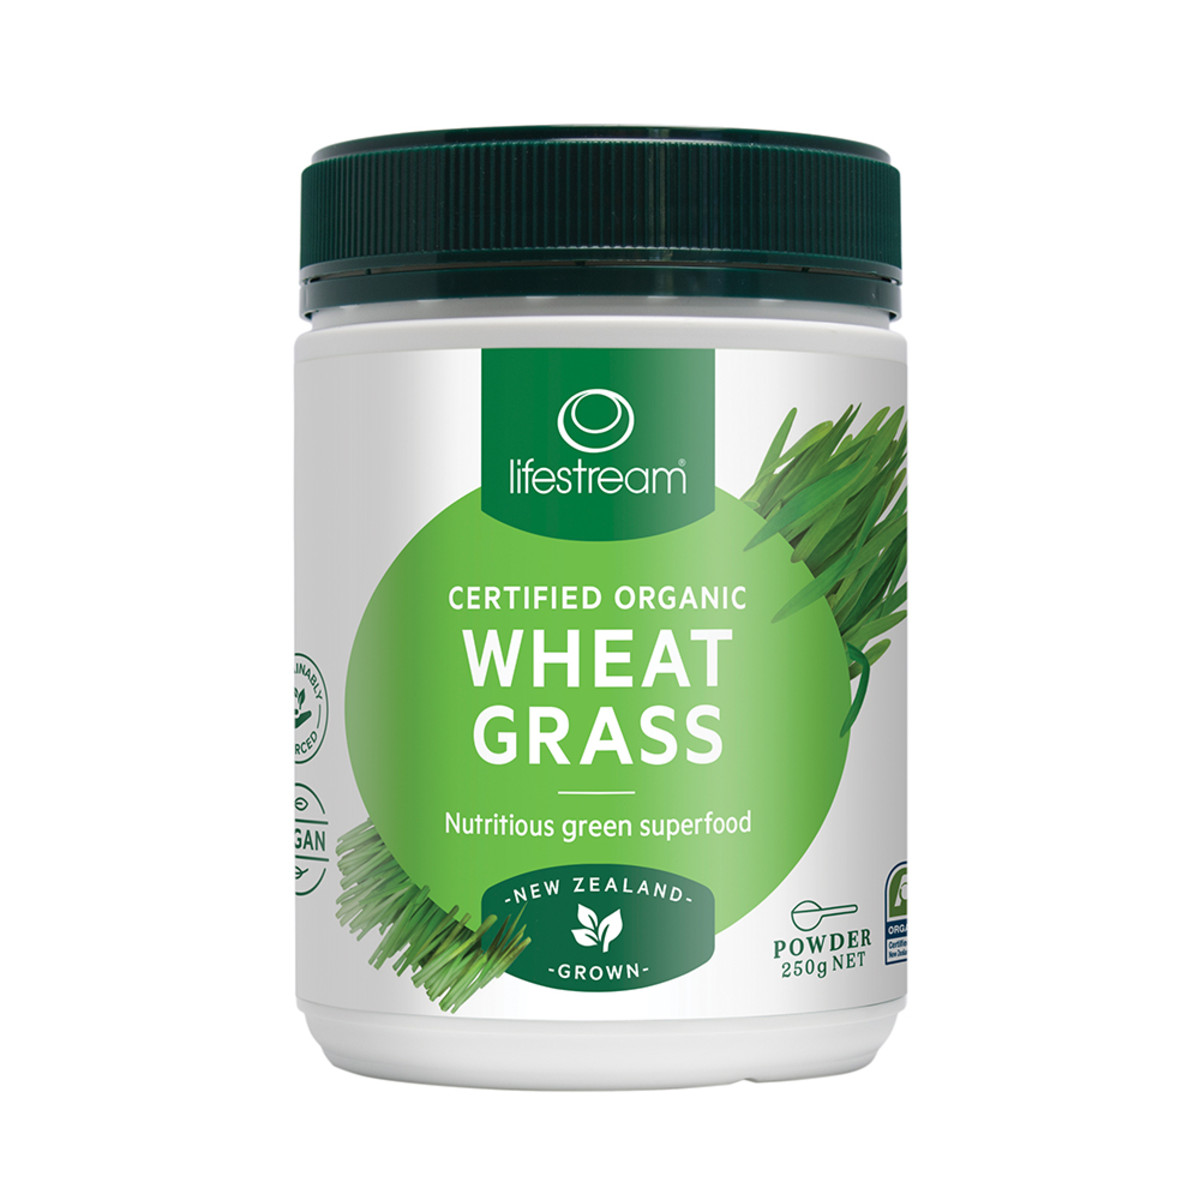 LIFESTREAM WHEAT GRASS PDR 250G